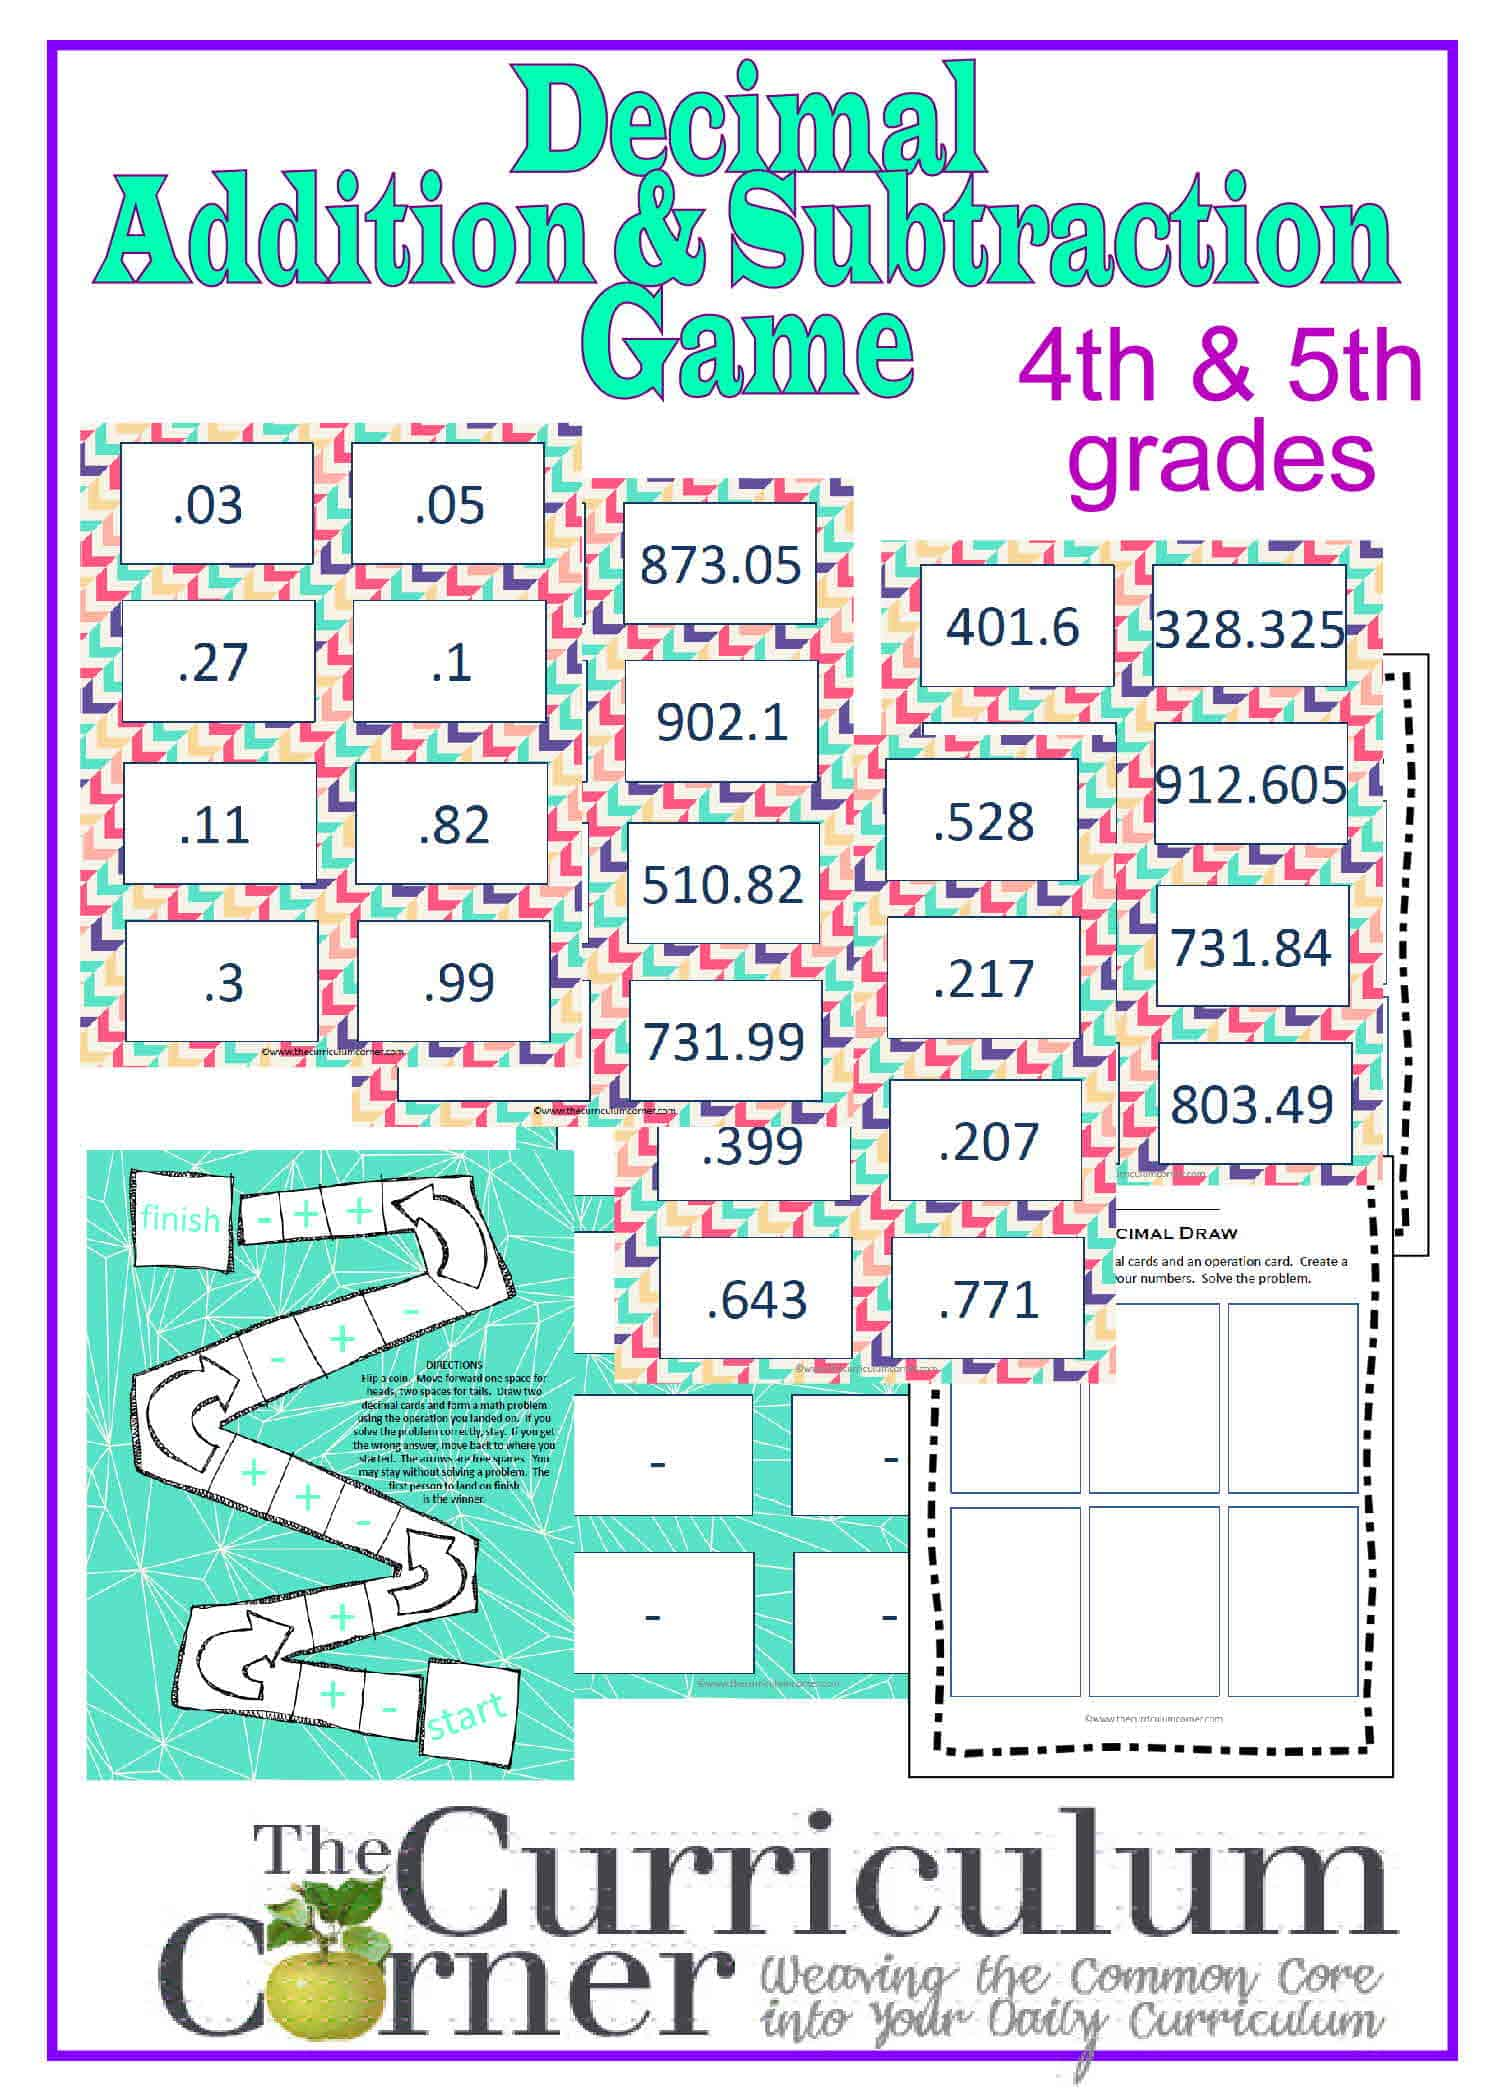 Adding & Subtracting Decimals Game - The Curriculum Corner 4-5-6